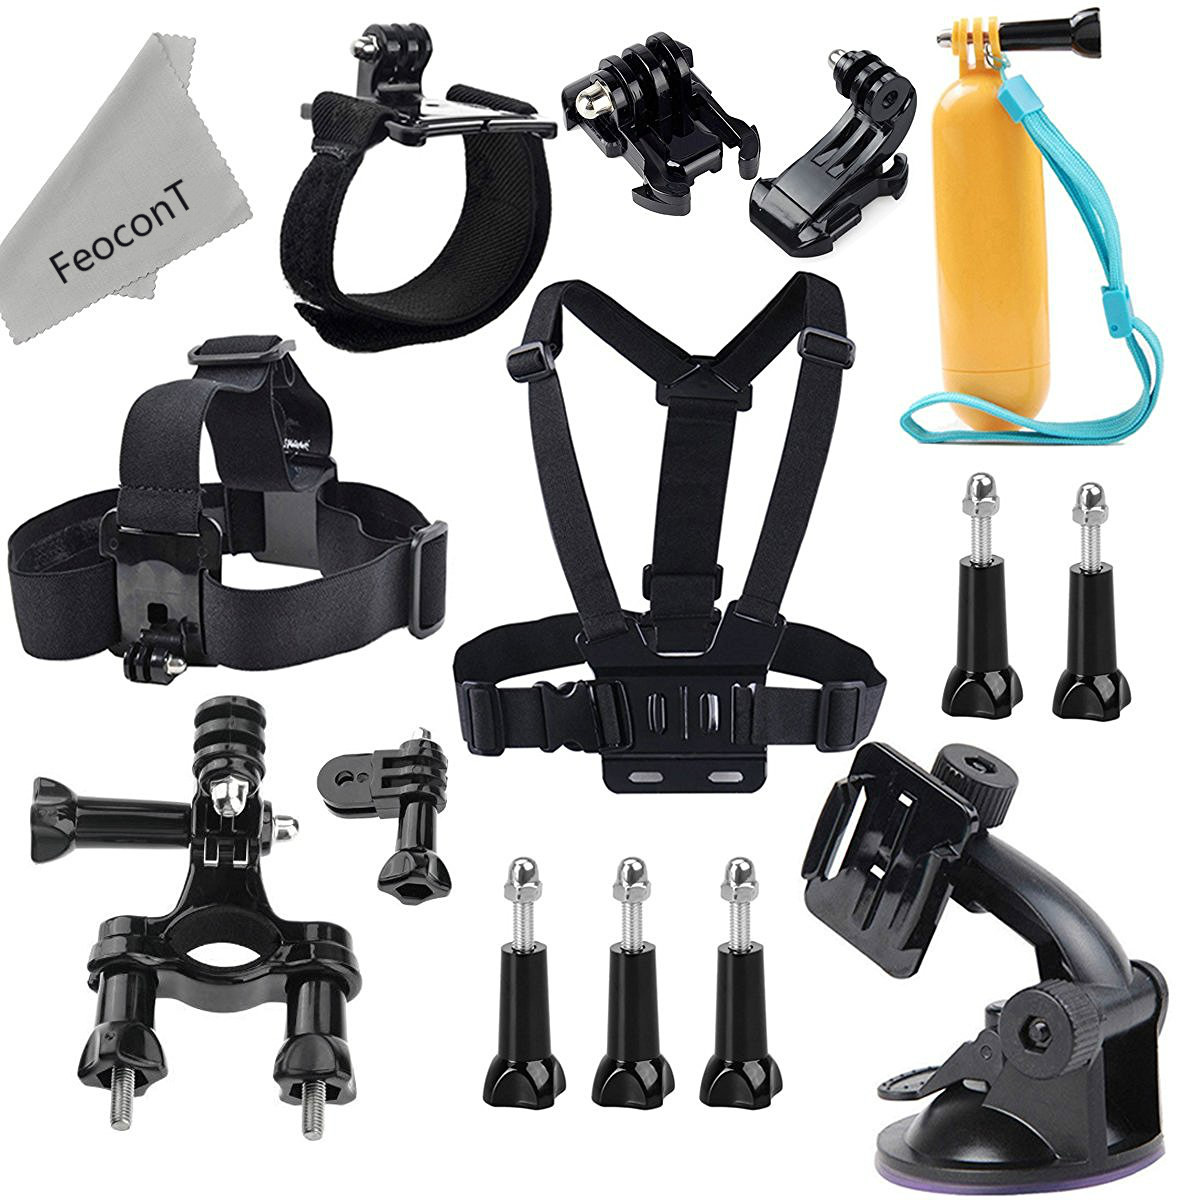 Accessories Kit For GoPro Hero 5 Session Hero Session Head Strap Chest Harness Yellow Hand Grip